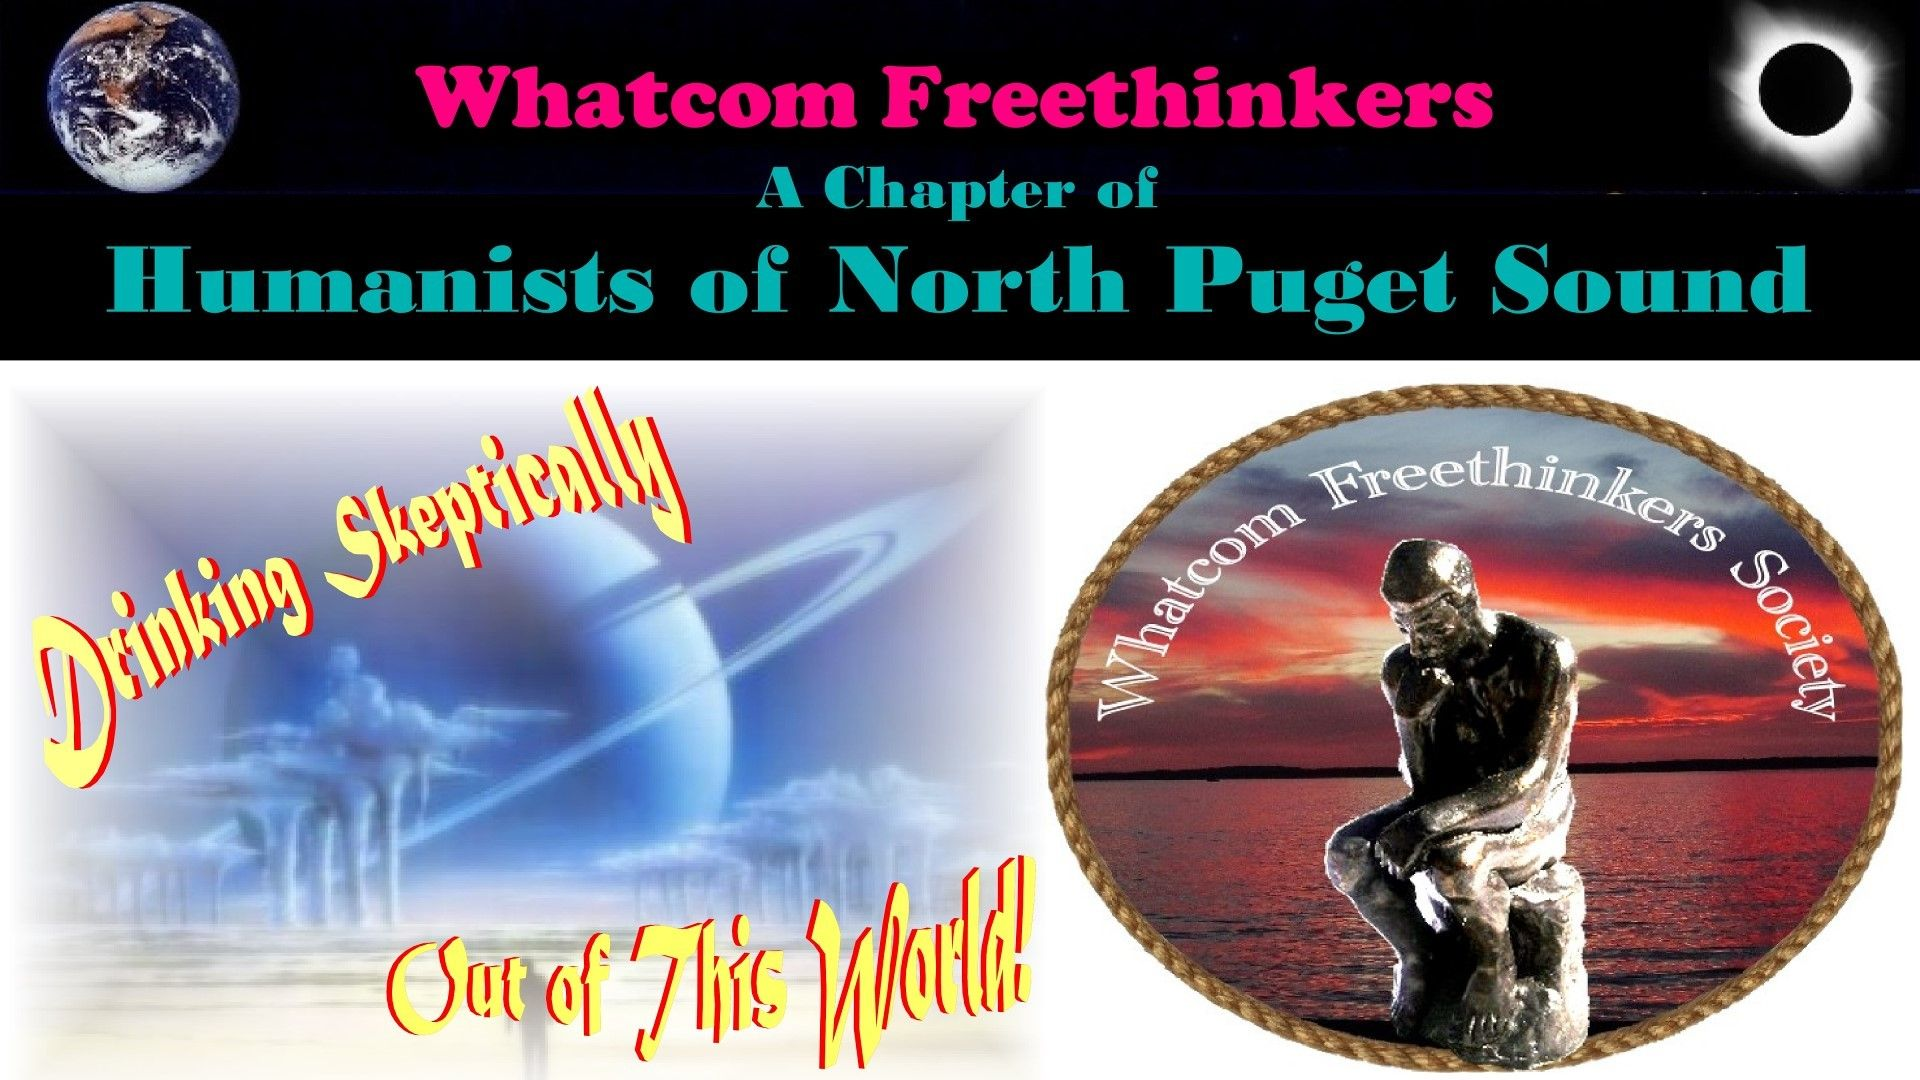 Whatcom Freethinkers